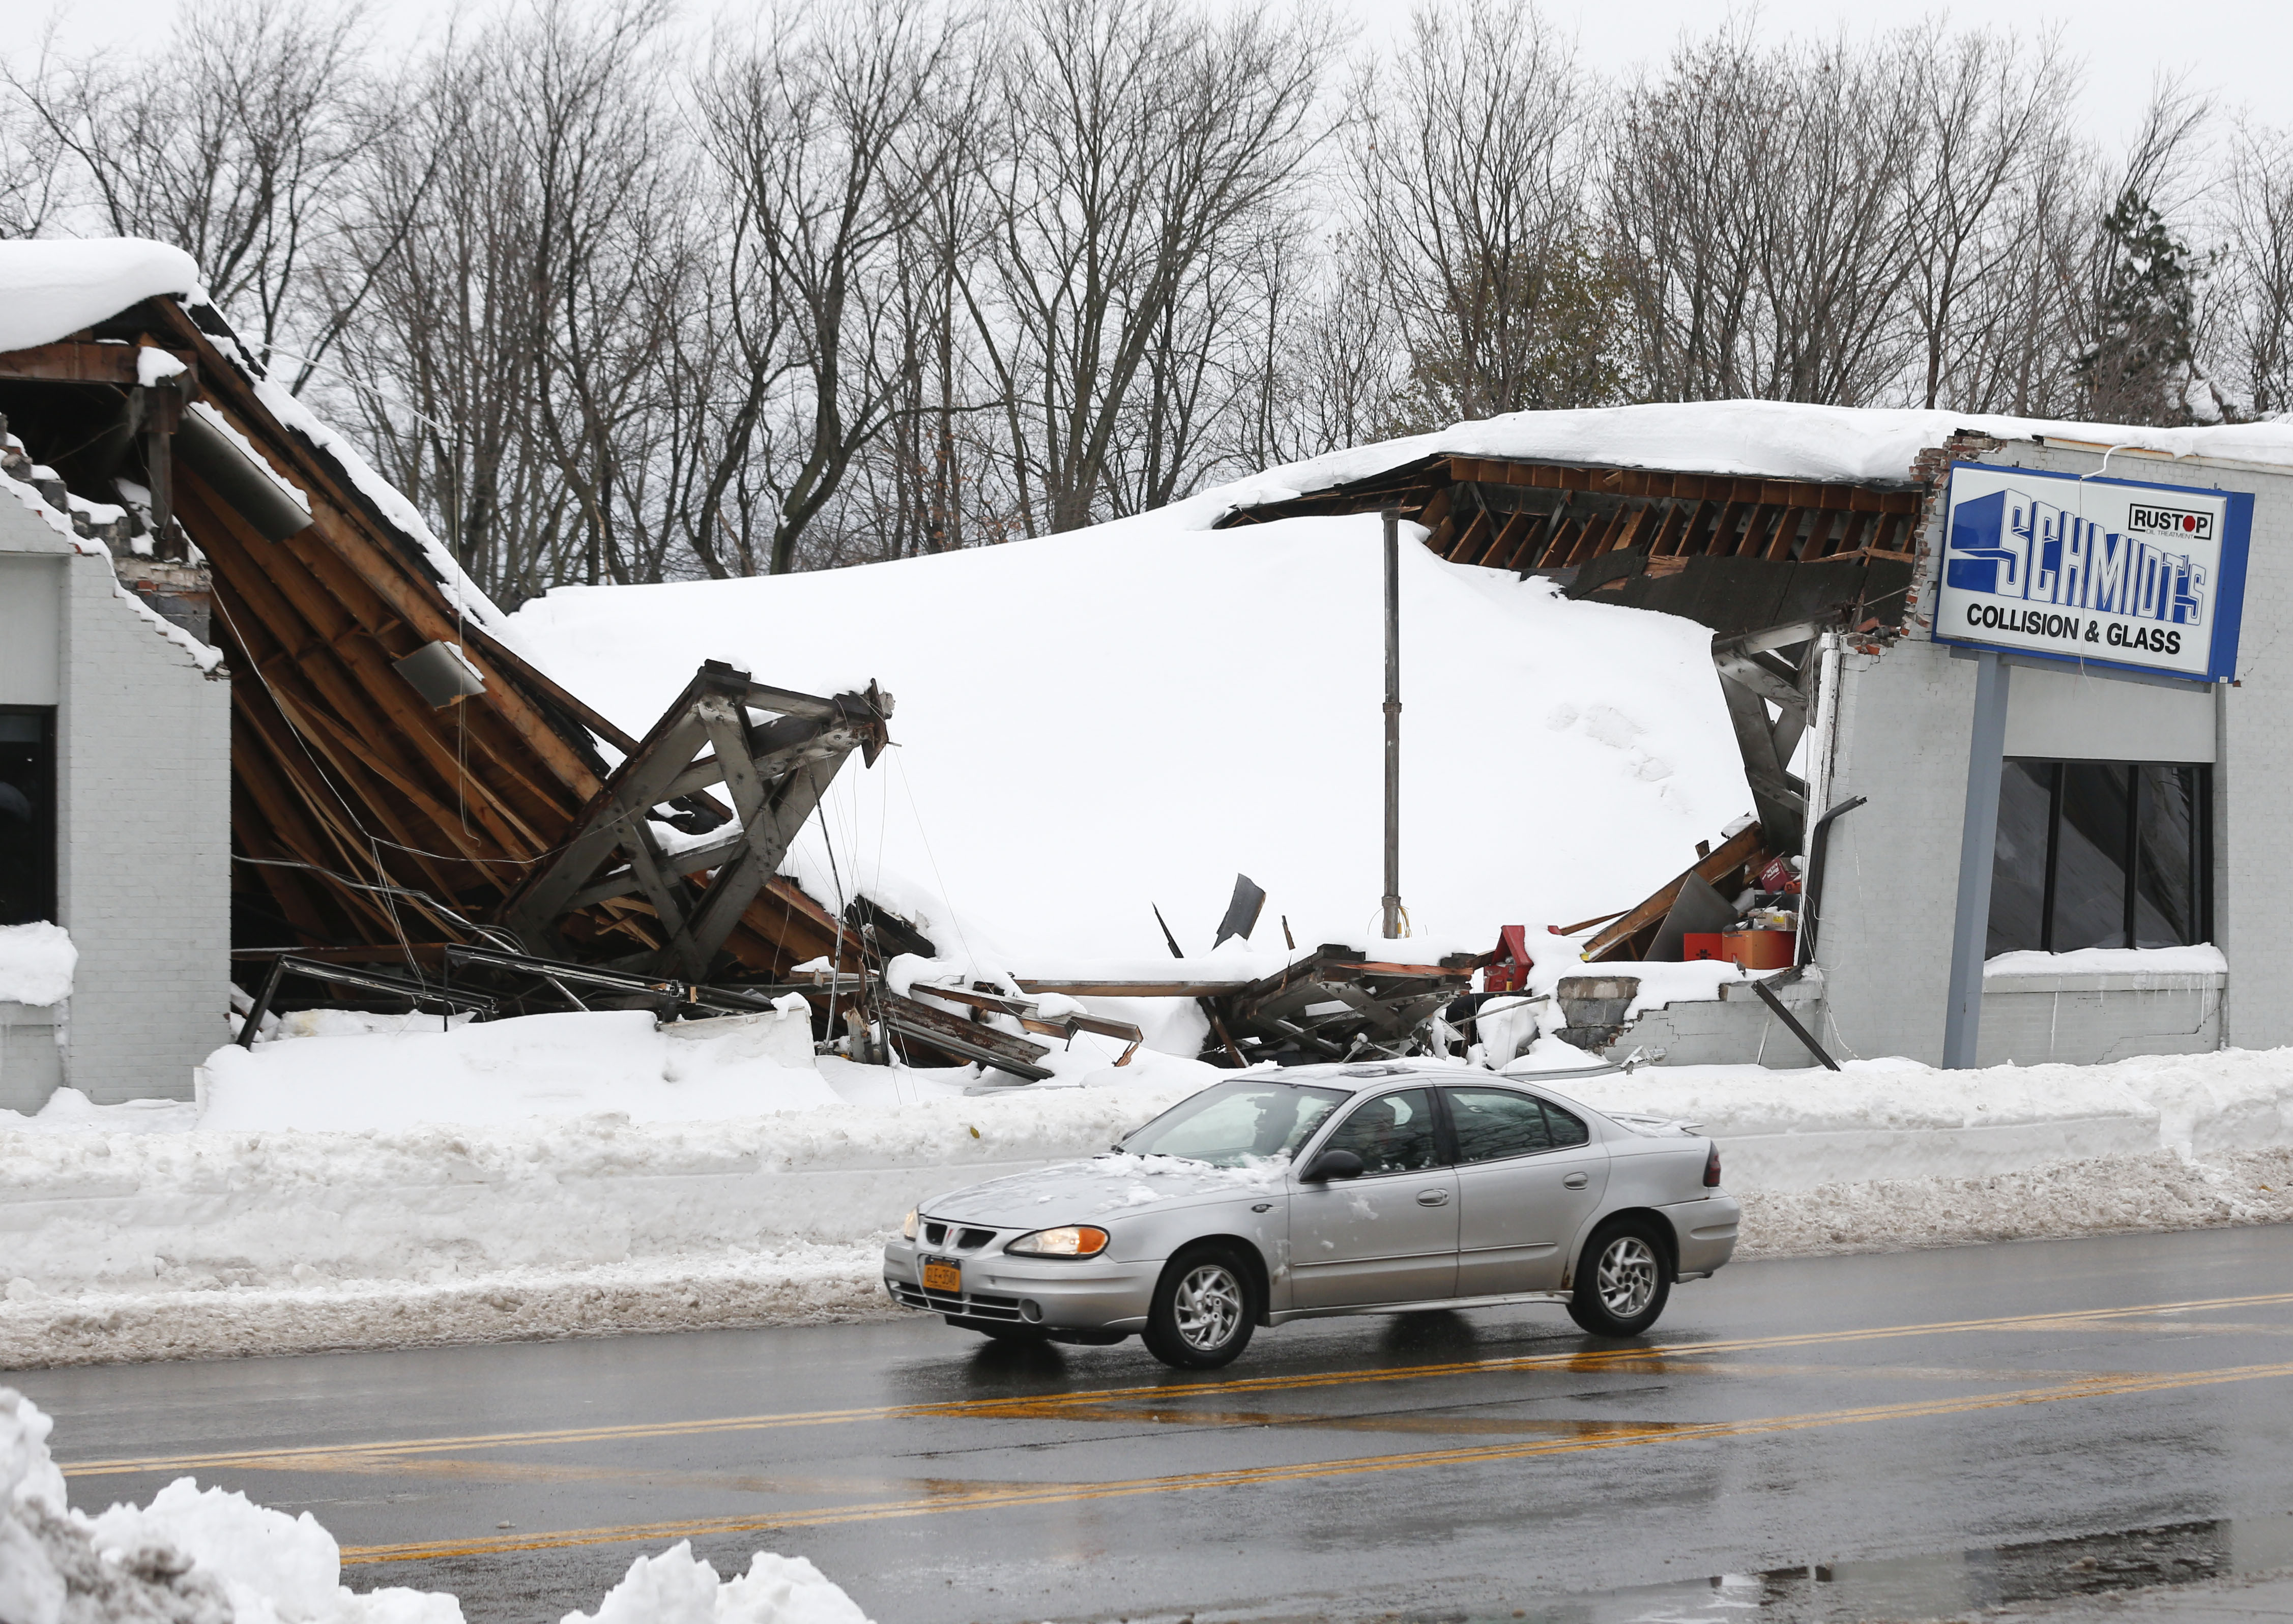 Roof collapses from weight of snow